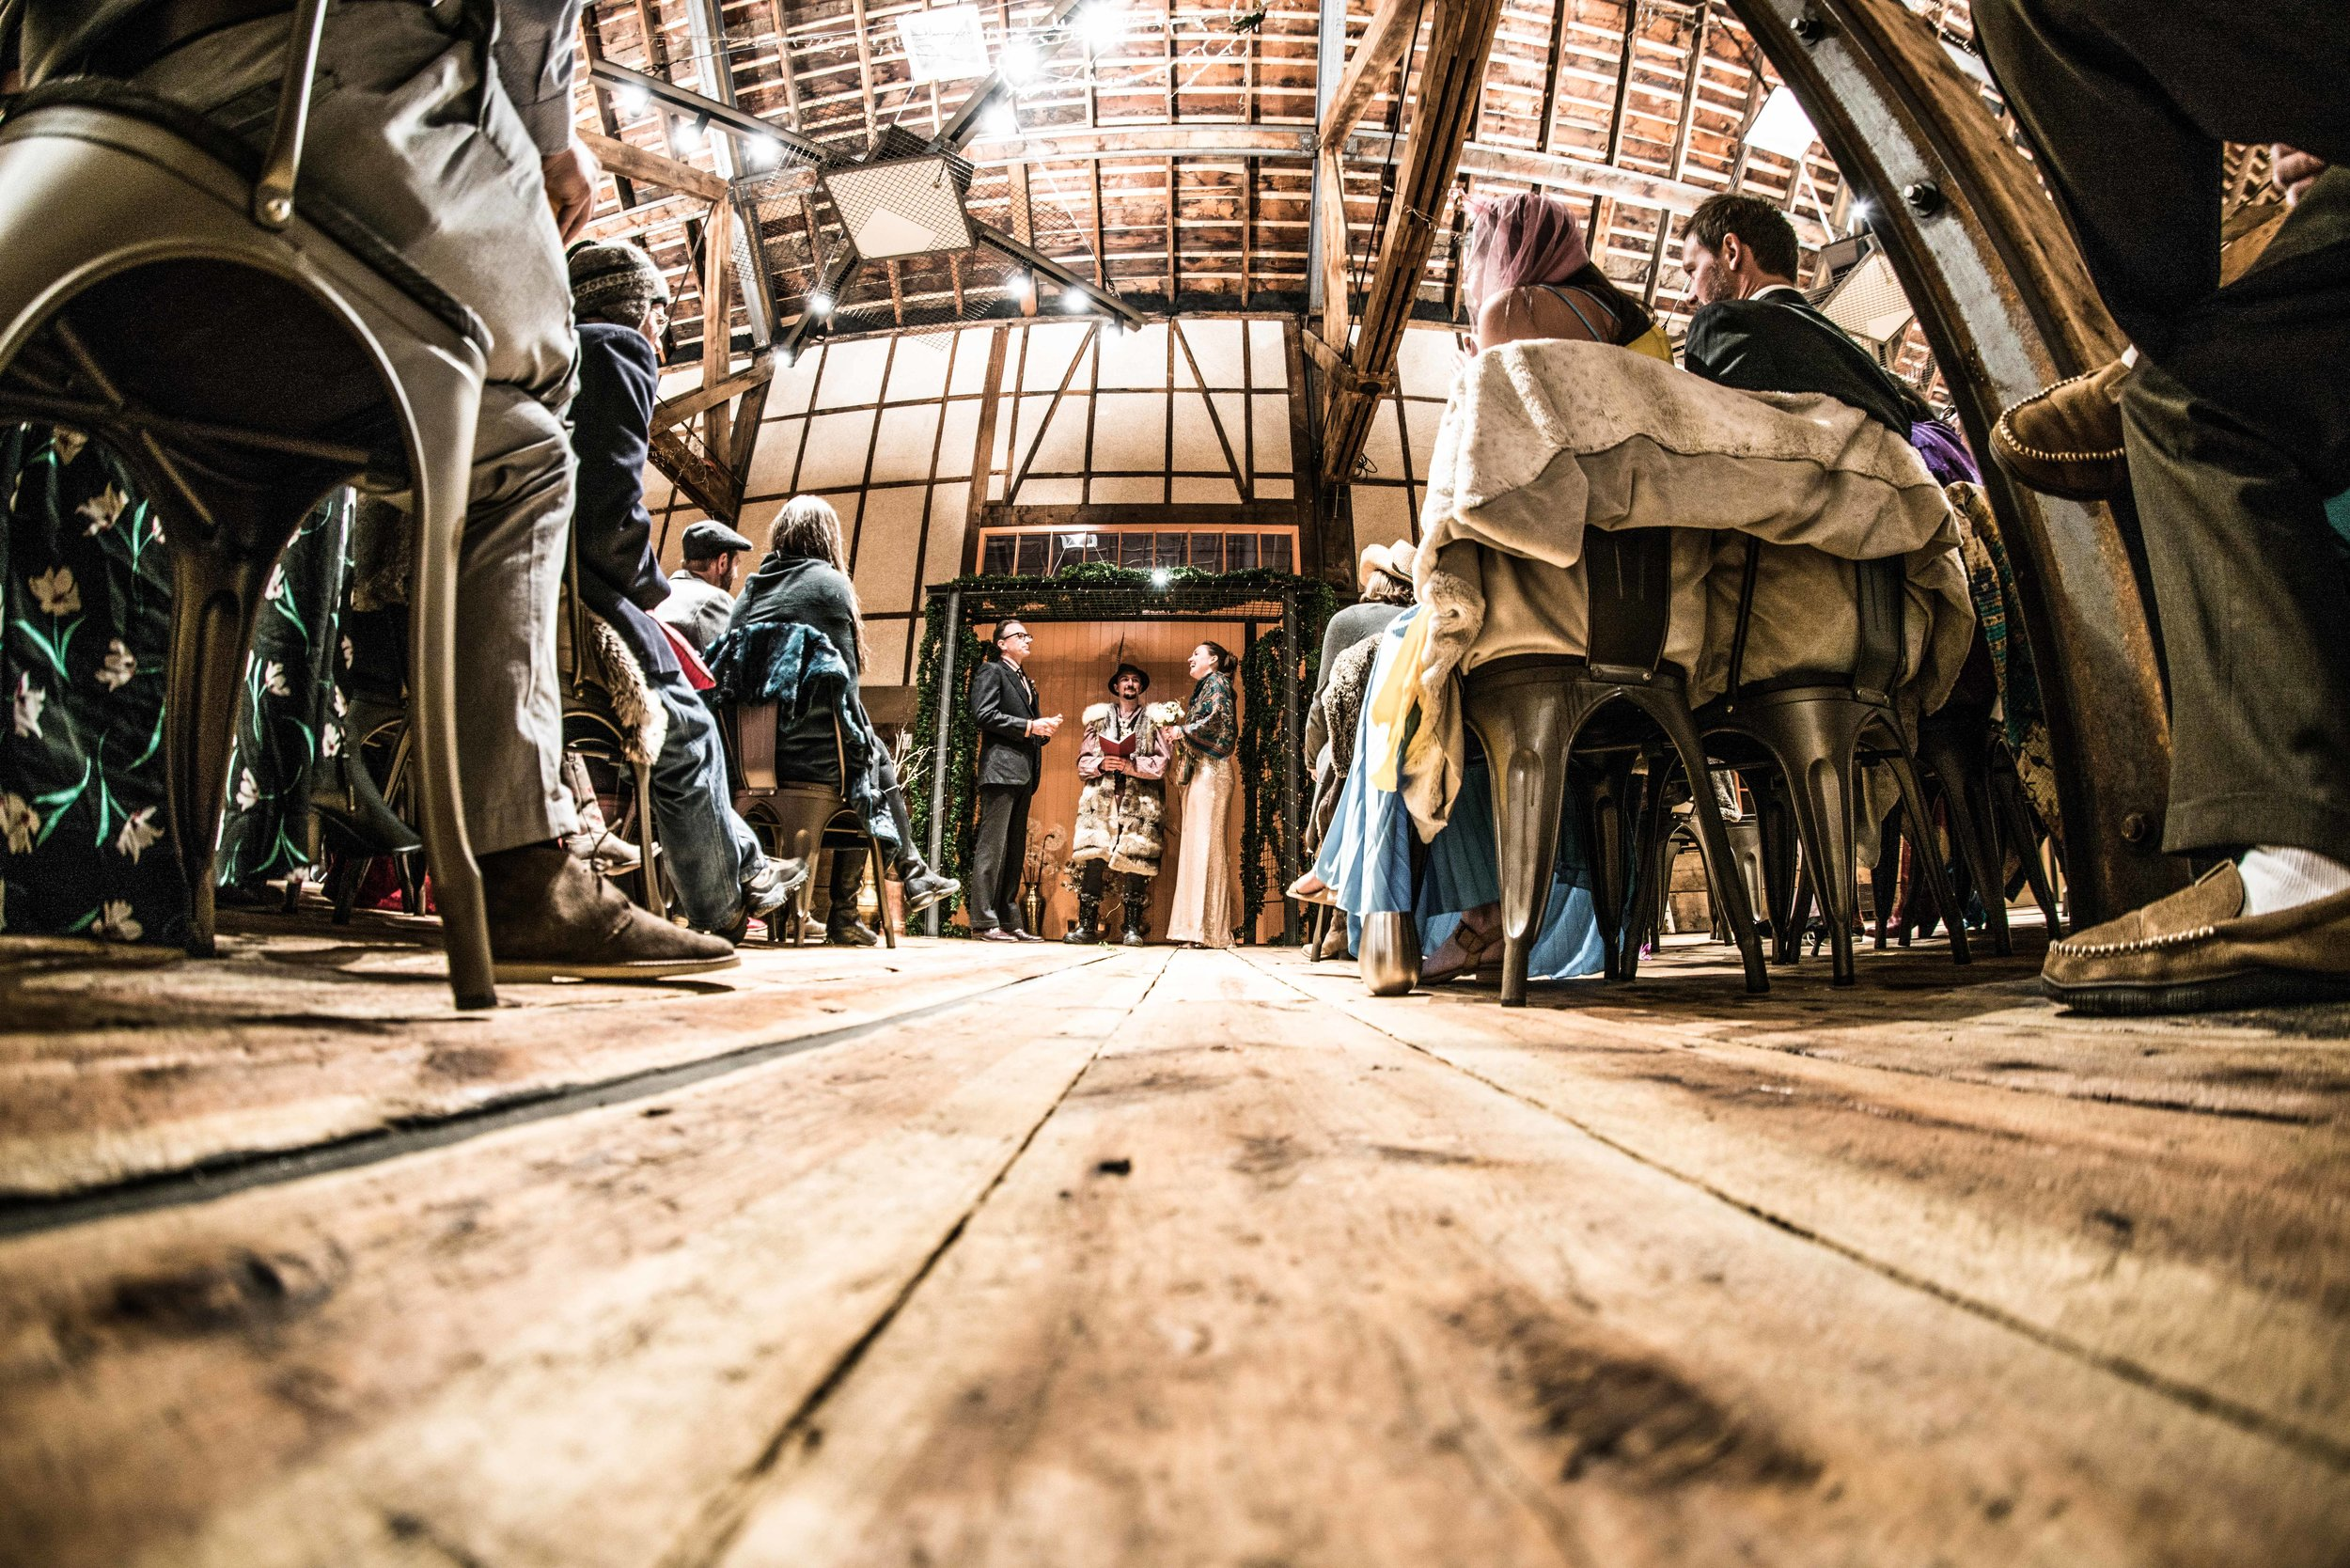 Preservation of the Original Floors . The history of weight is in the wood planked floors. It's one of our favorite features of the building. Imagine the crates of ore, eggs, clothing, coal, flour, and livestock passing through on any given late 1800s afternoon. The building has lived through three centuries of traffic and you can see there's the wear in the floor near the doors, where merchandise was herded in, ticketed, and sent on its way.